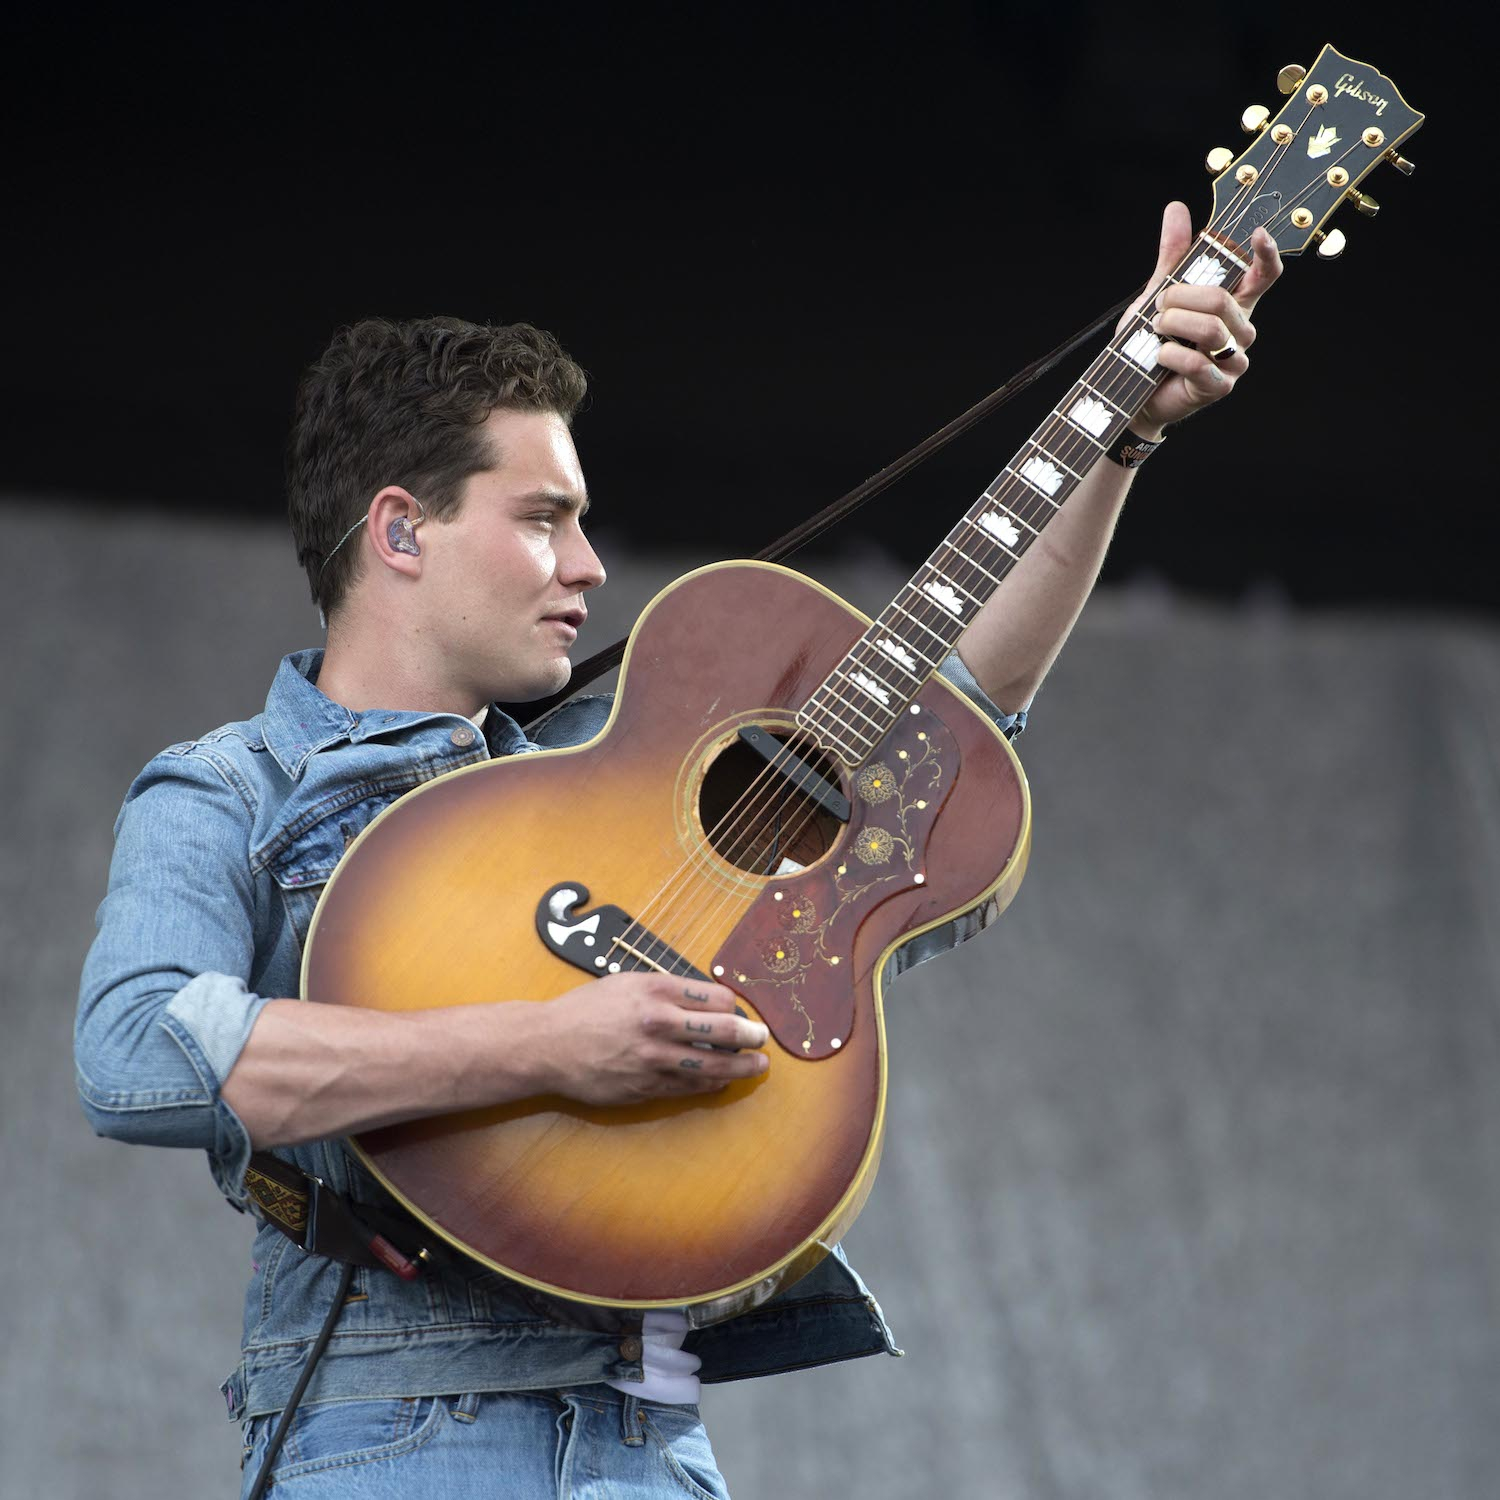 Douwe Bob opent Fool Bar in Amsterdam